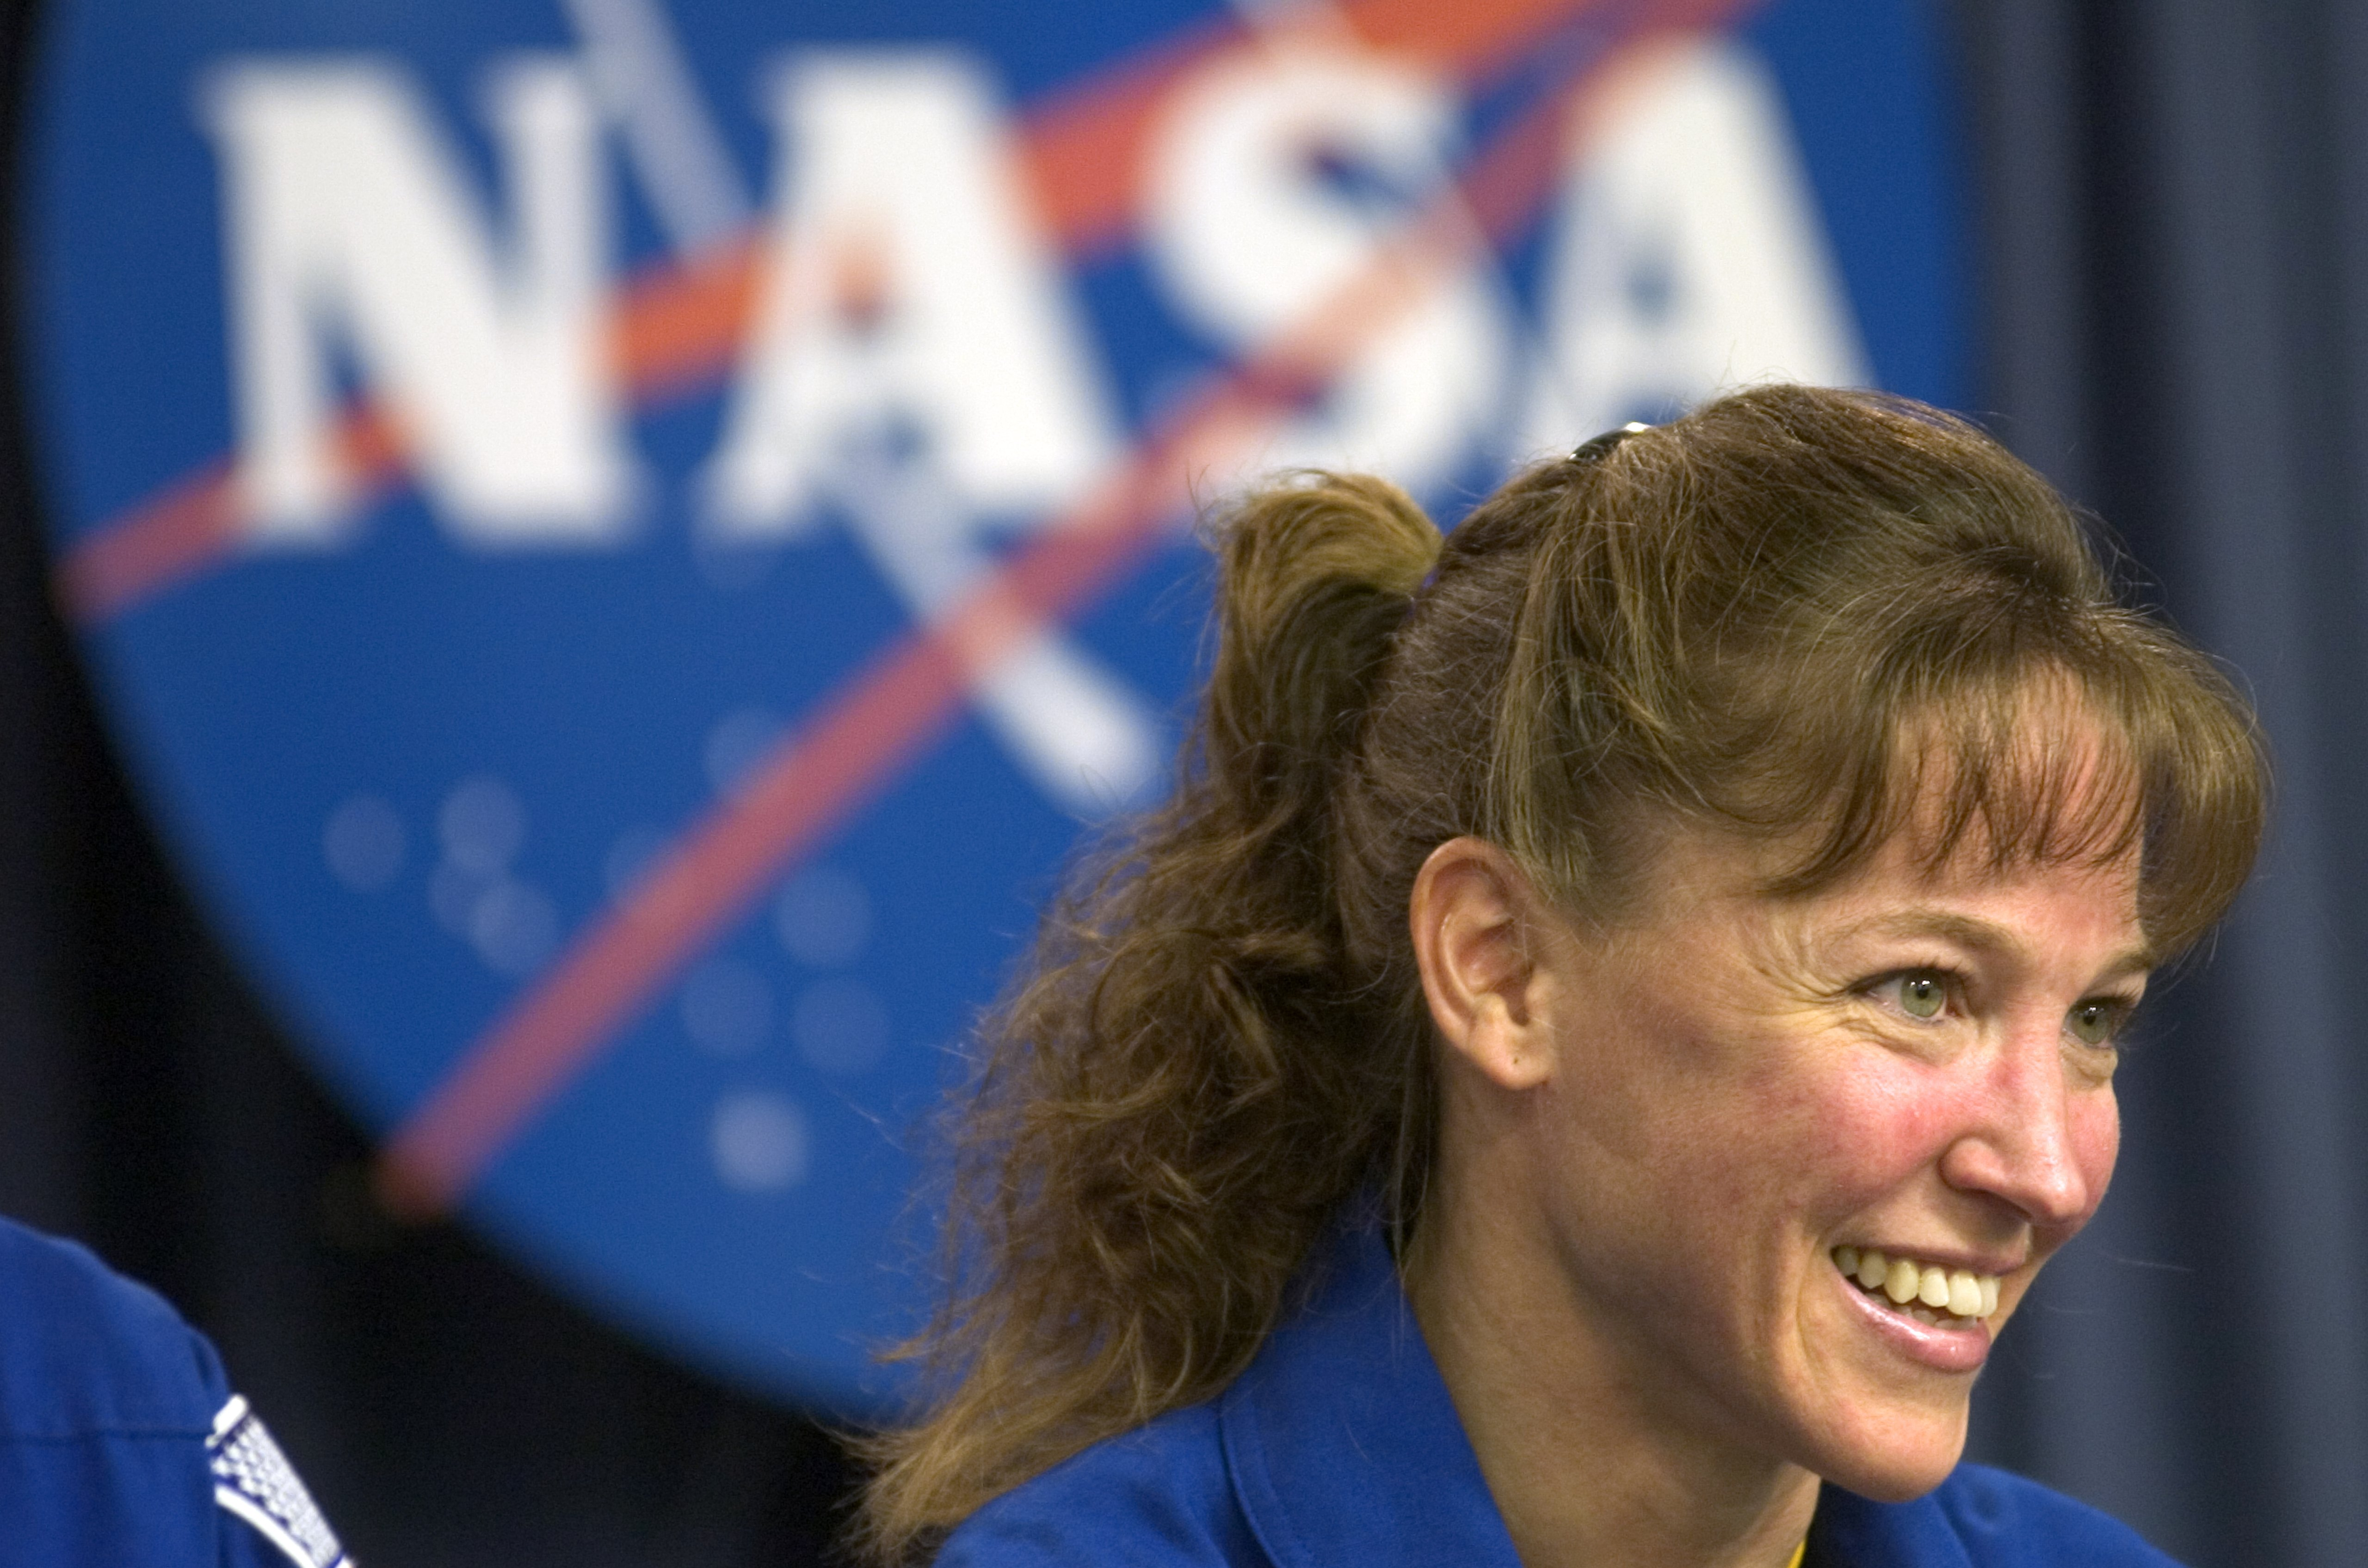 Mission Specialist Lisa Nowak speaks at a post mission press conference July 17, 2006 at Kennedy Space Center in Florida.